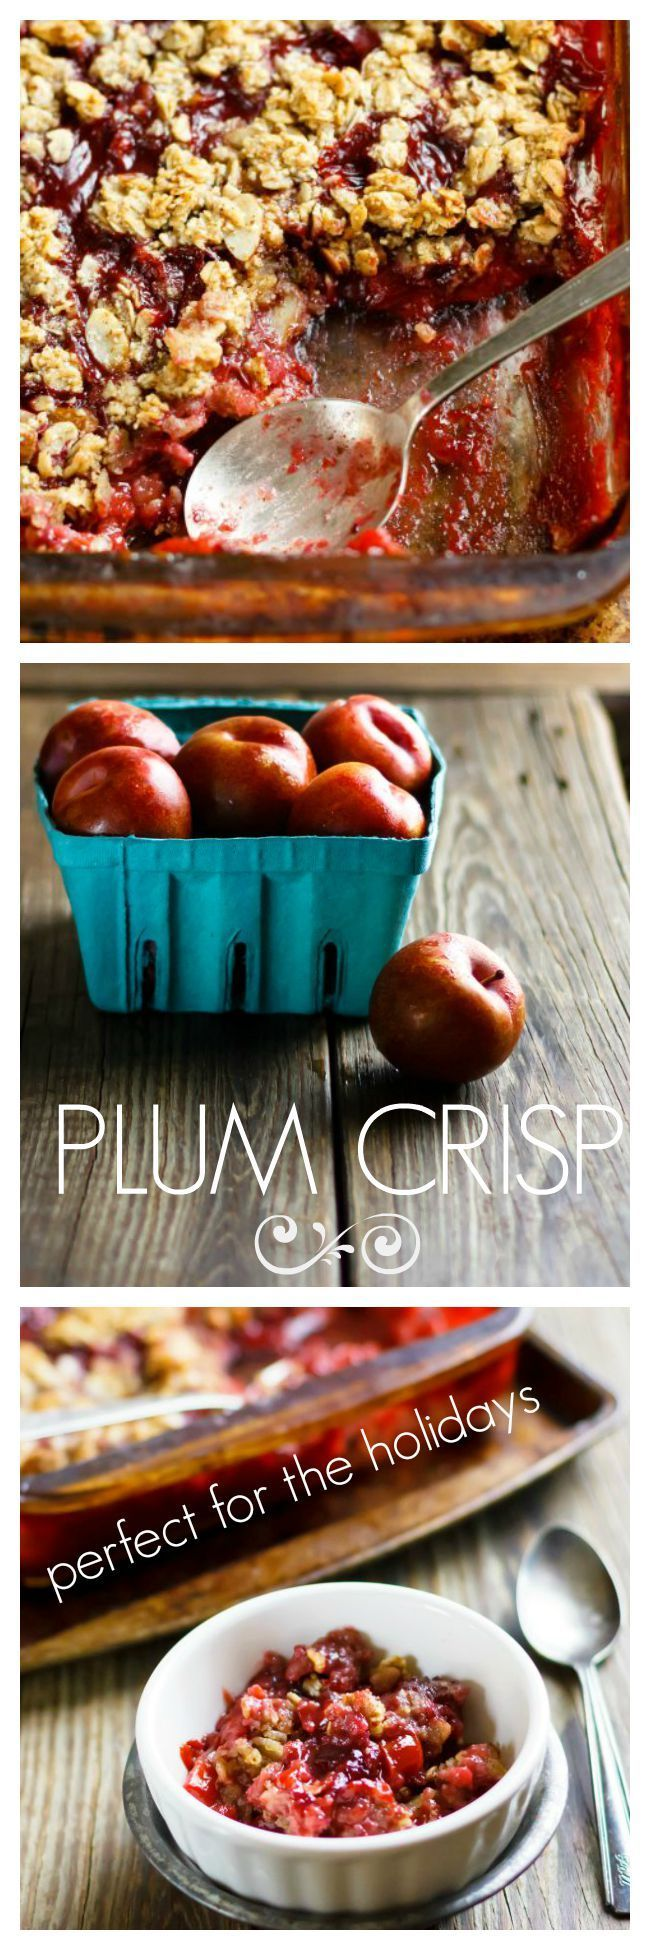 Holiday Perfect Plum Crisp. Make plenty, seconds will be wanted. V, gf, allergy friendly.